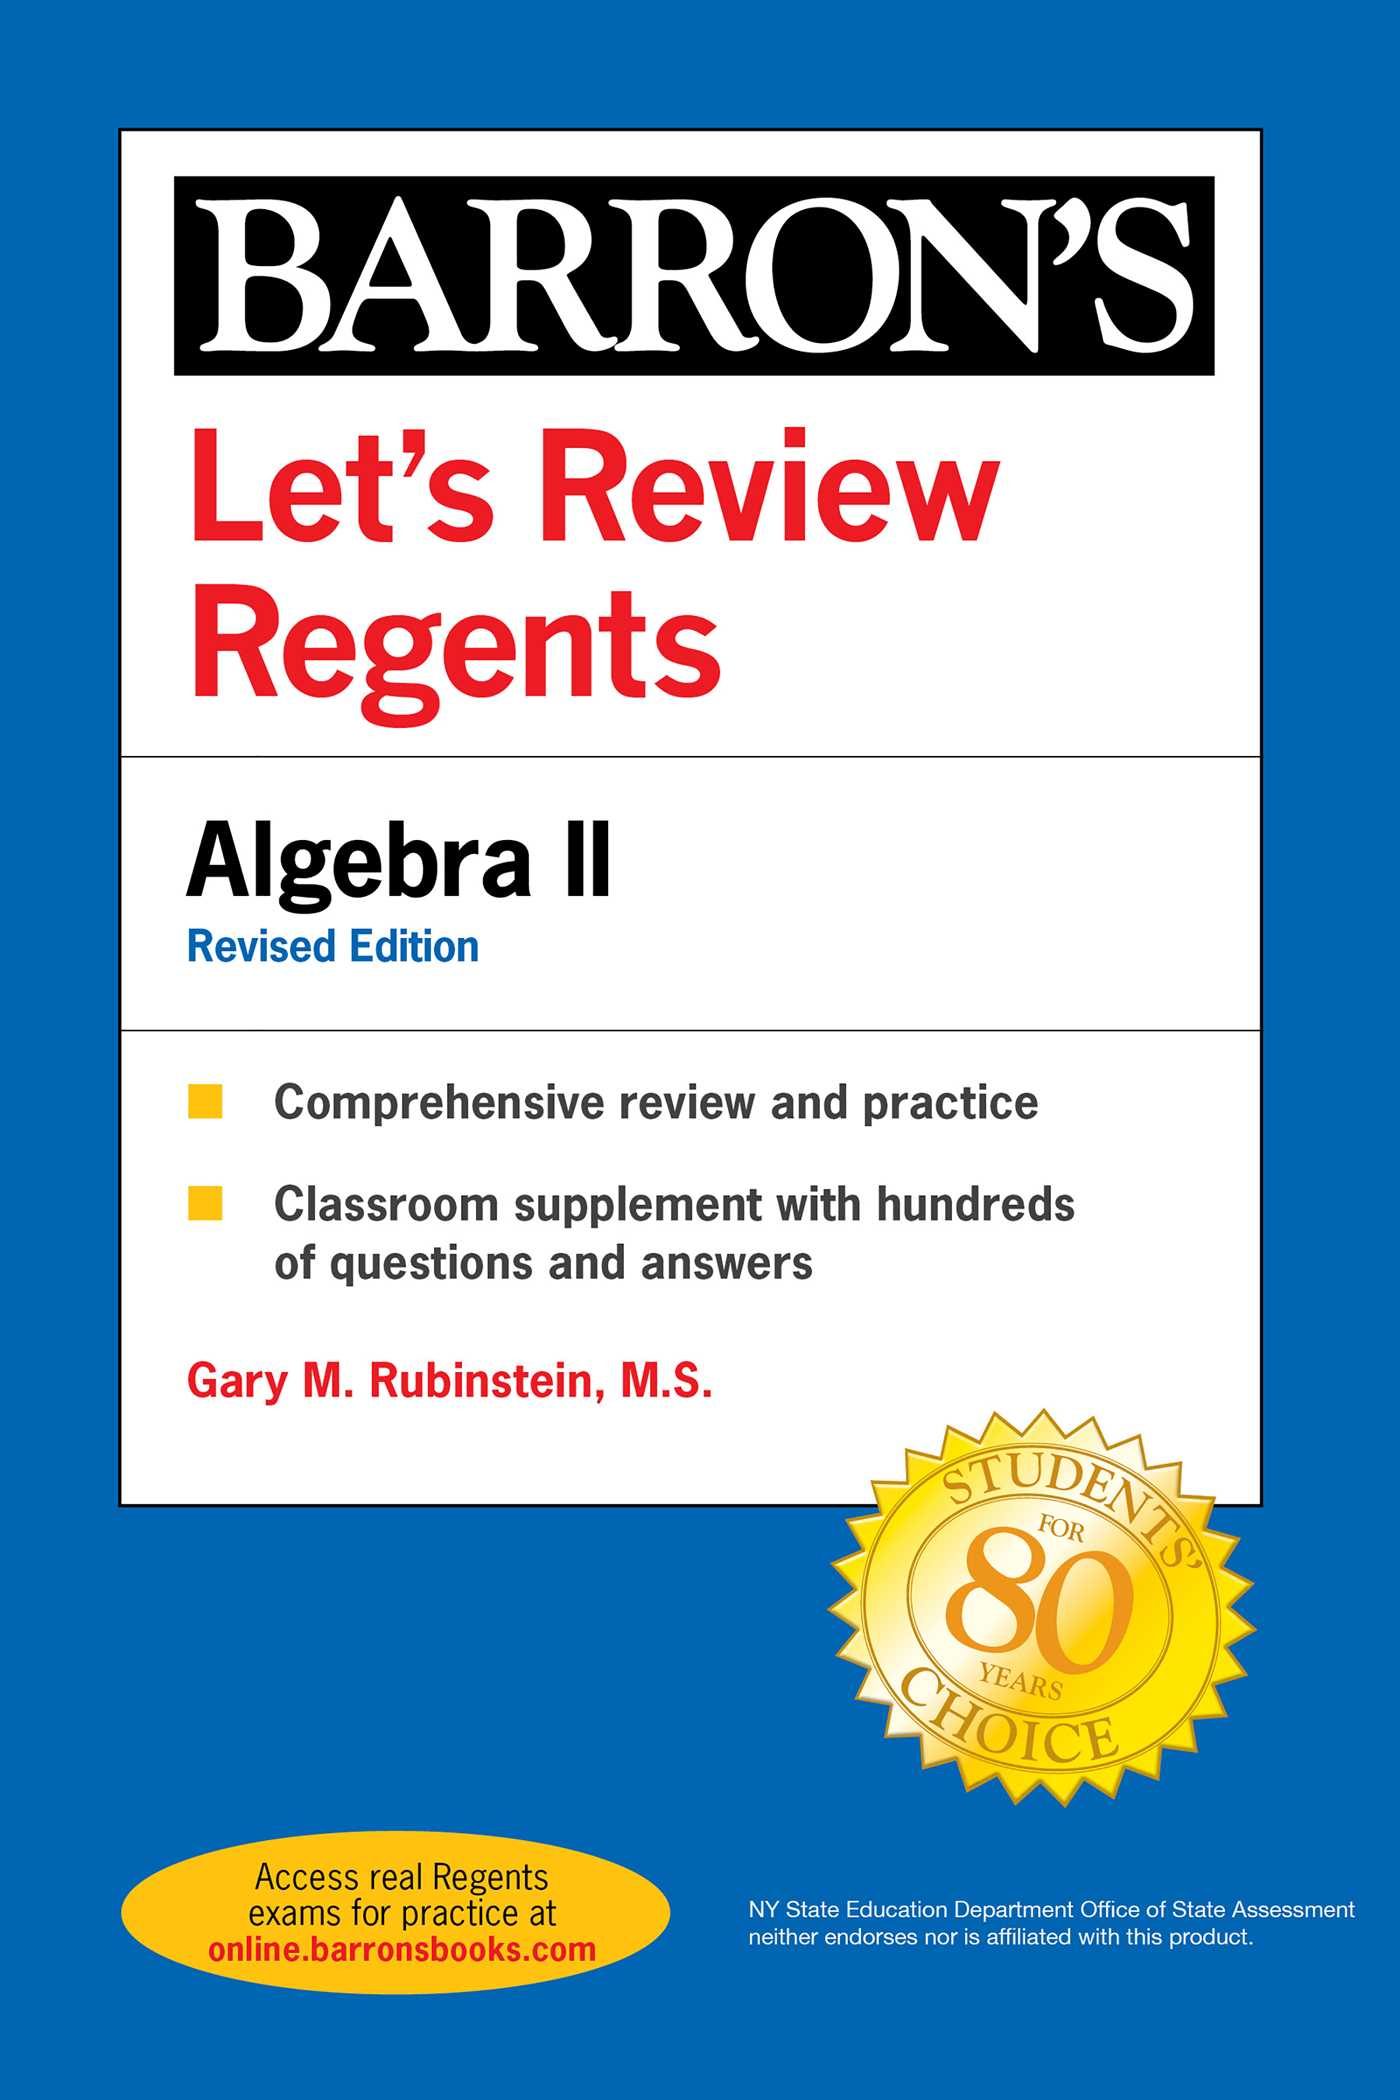 Let's Review Regents: Algebra II Revised Edition